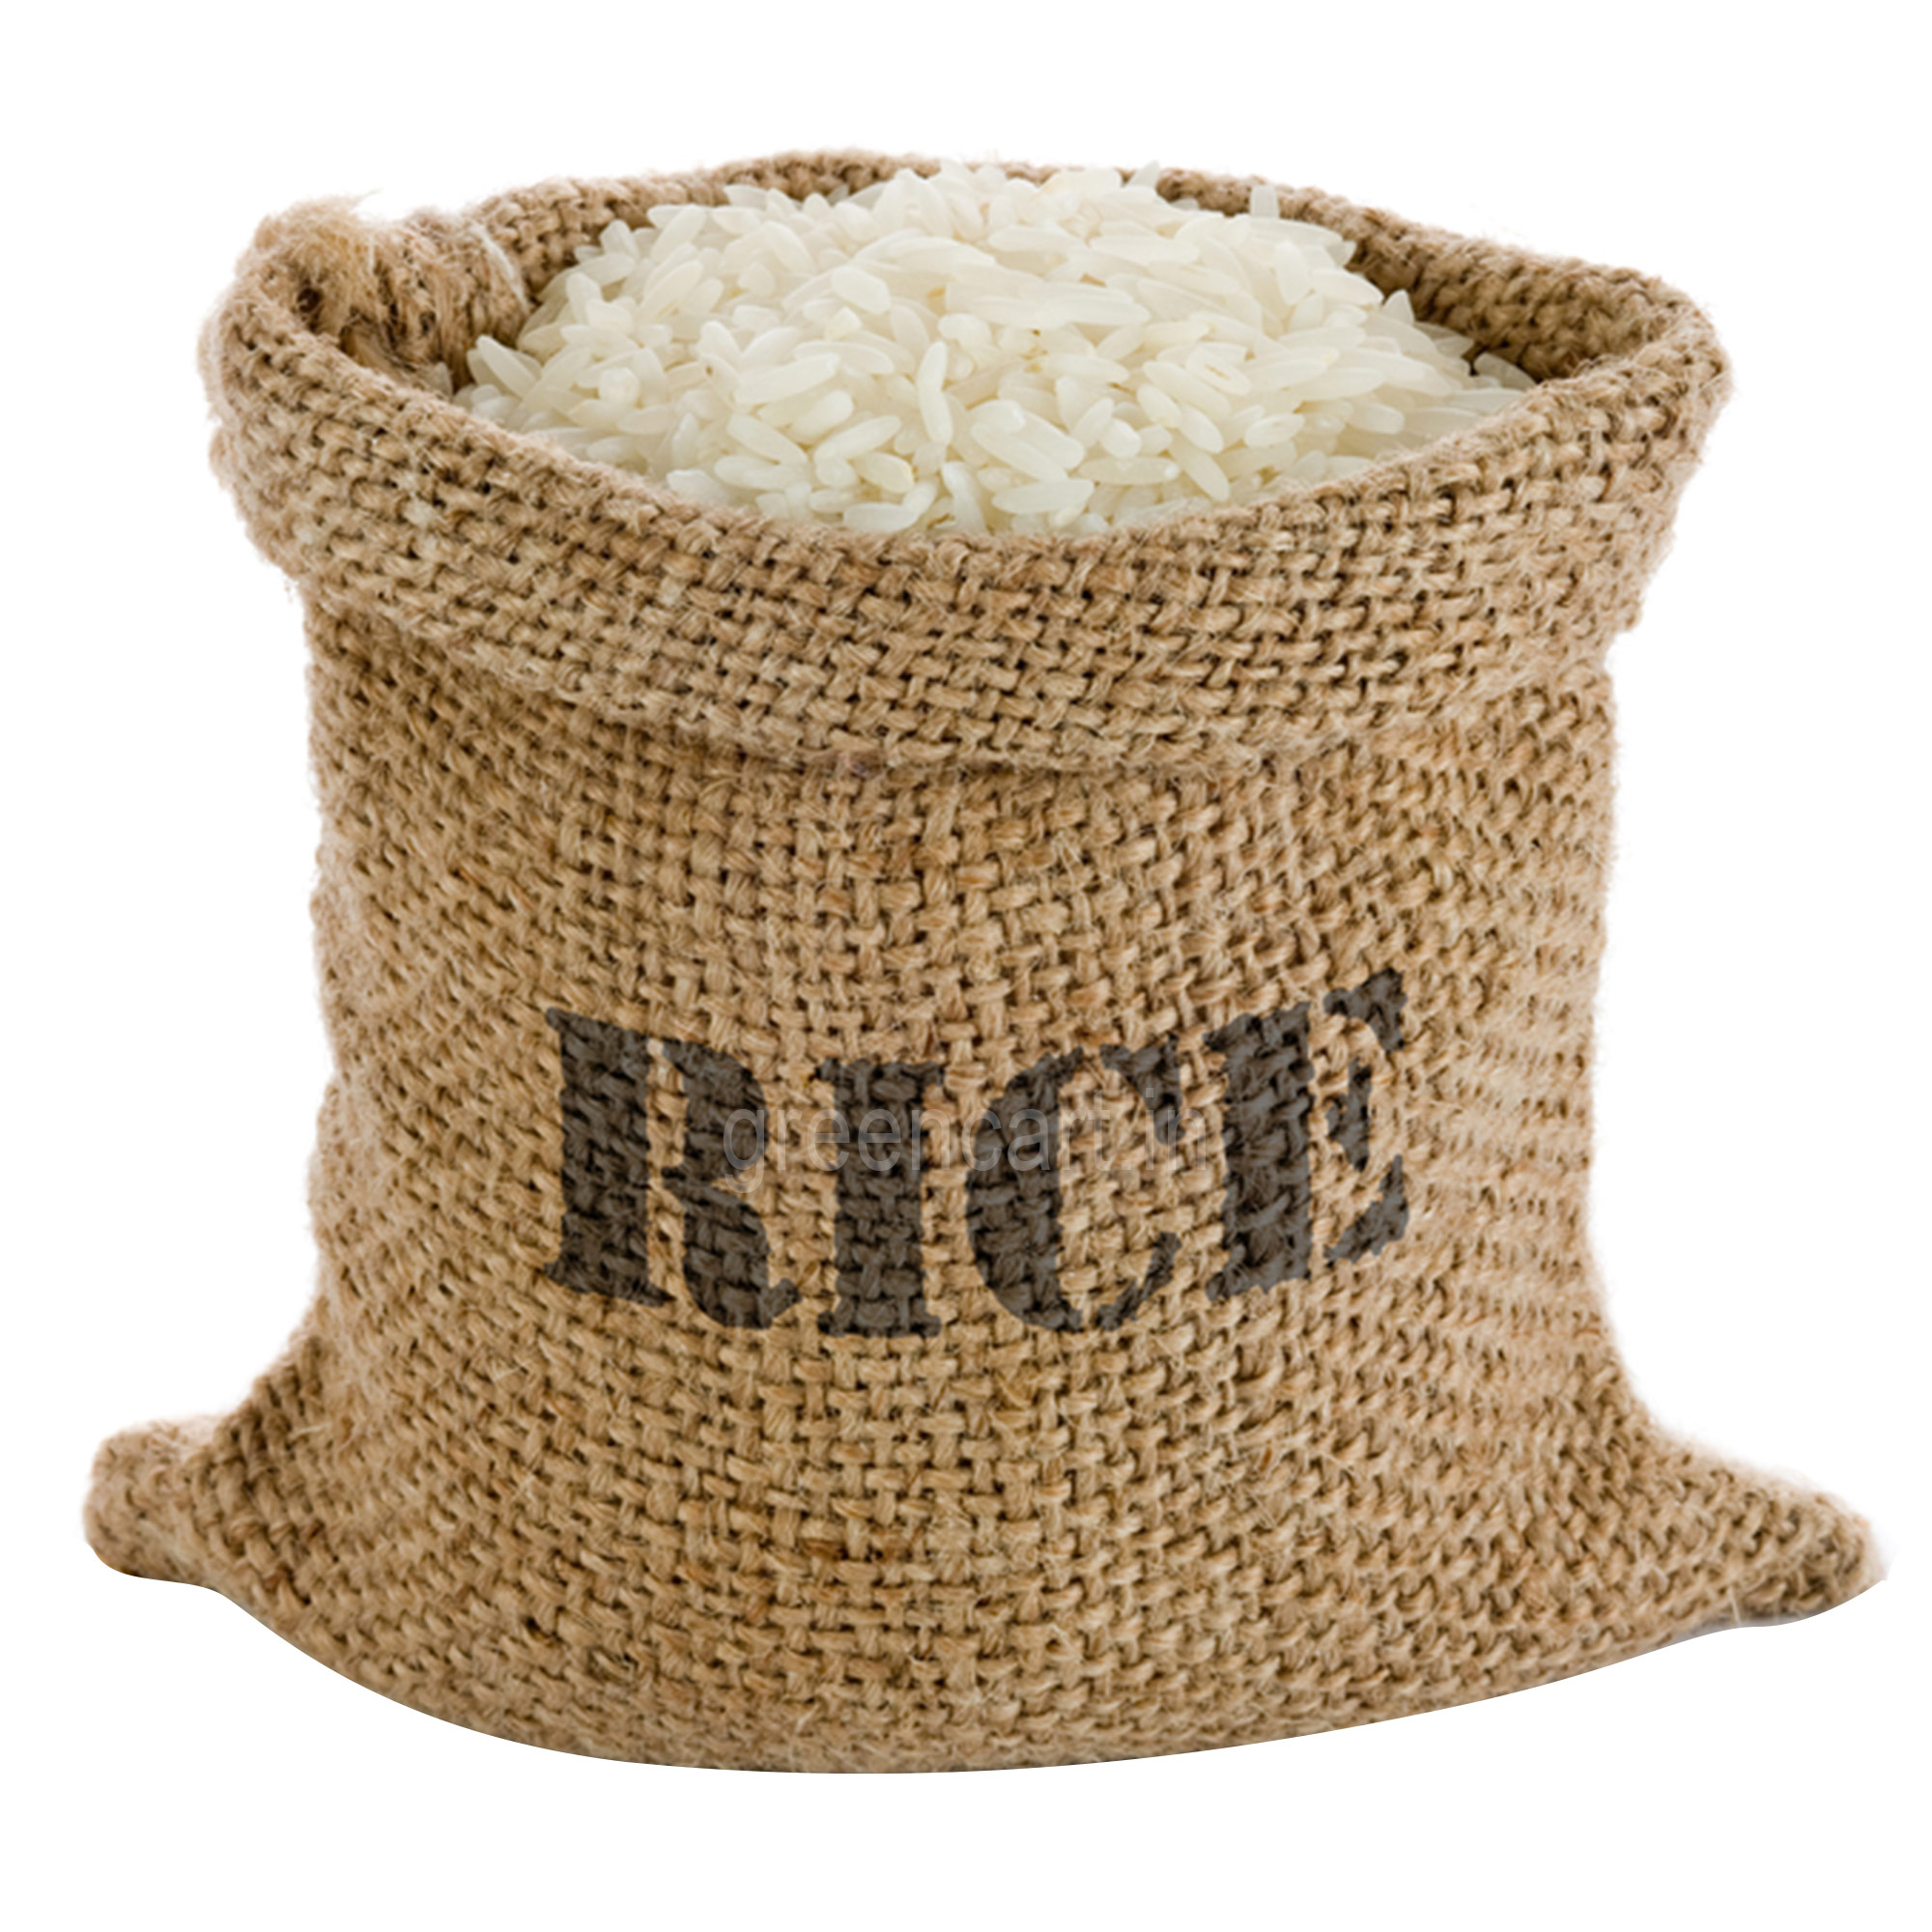 Sack Of Rice PNG